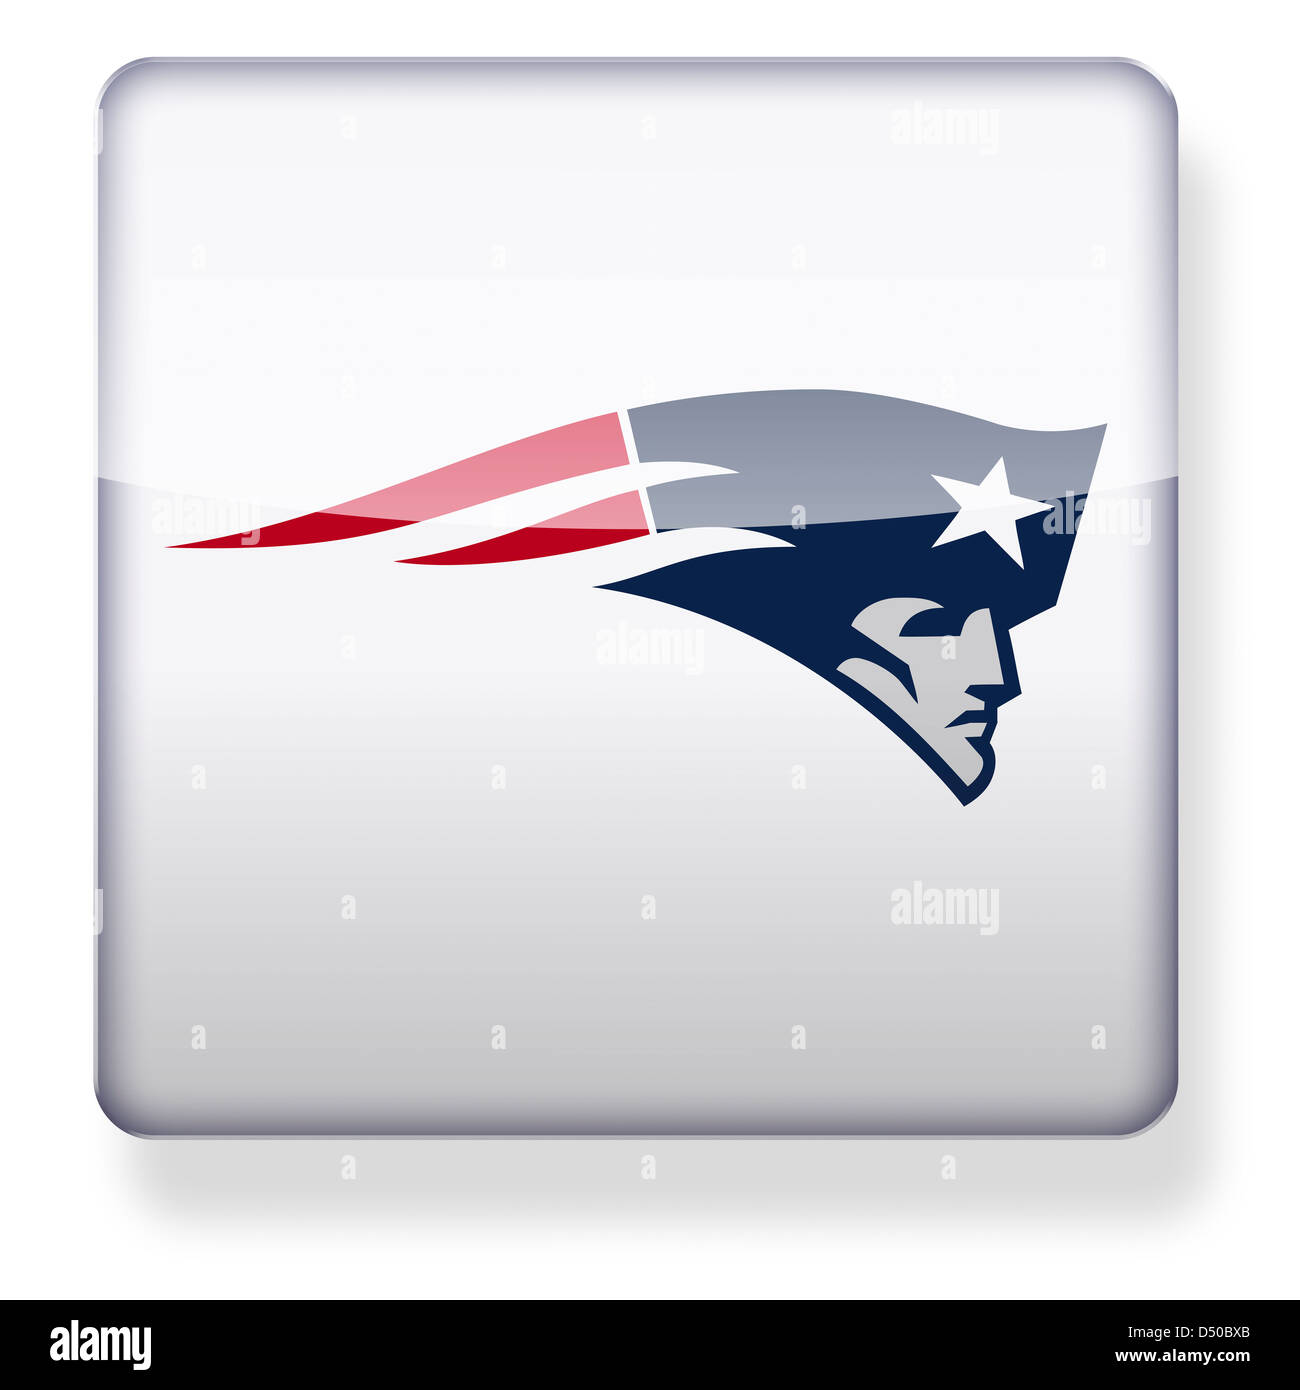 New England Patriots logo as an app icon. Clipping path included. - Stock Image